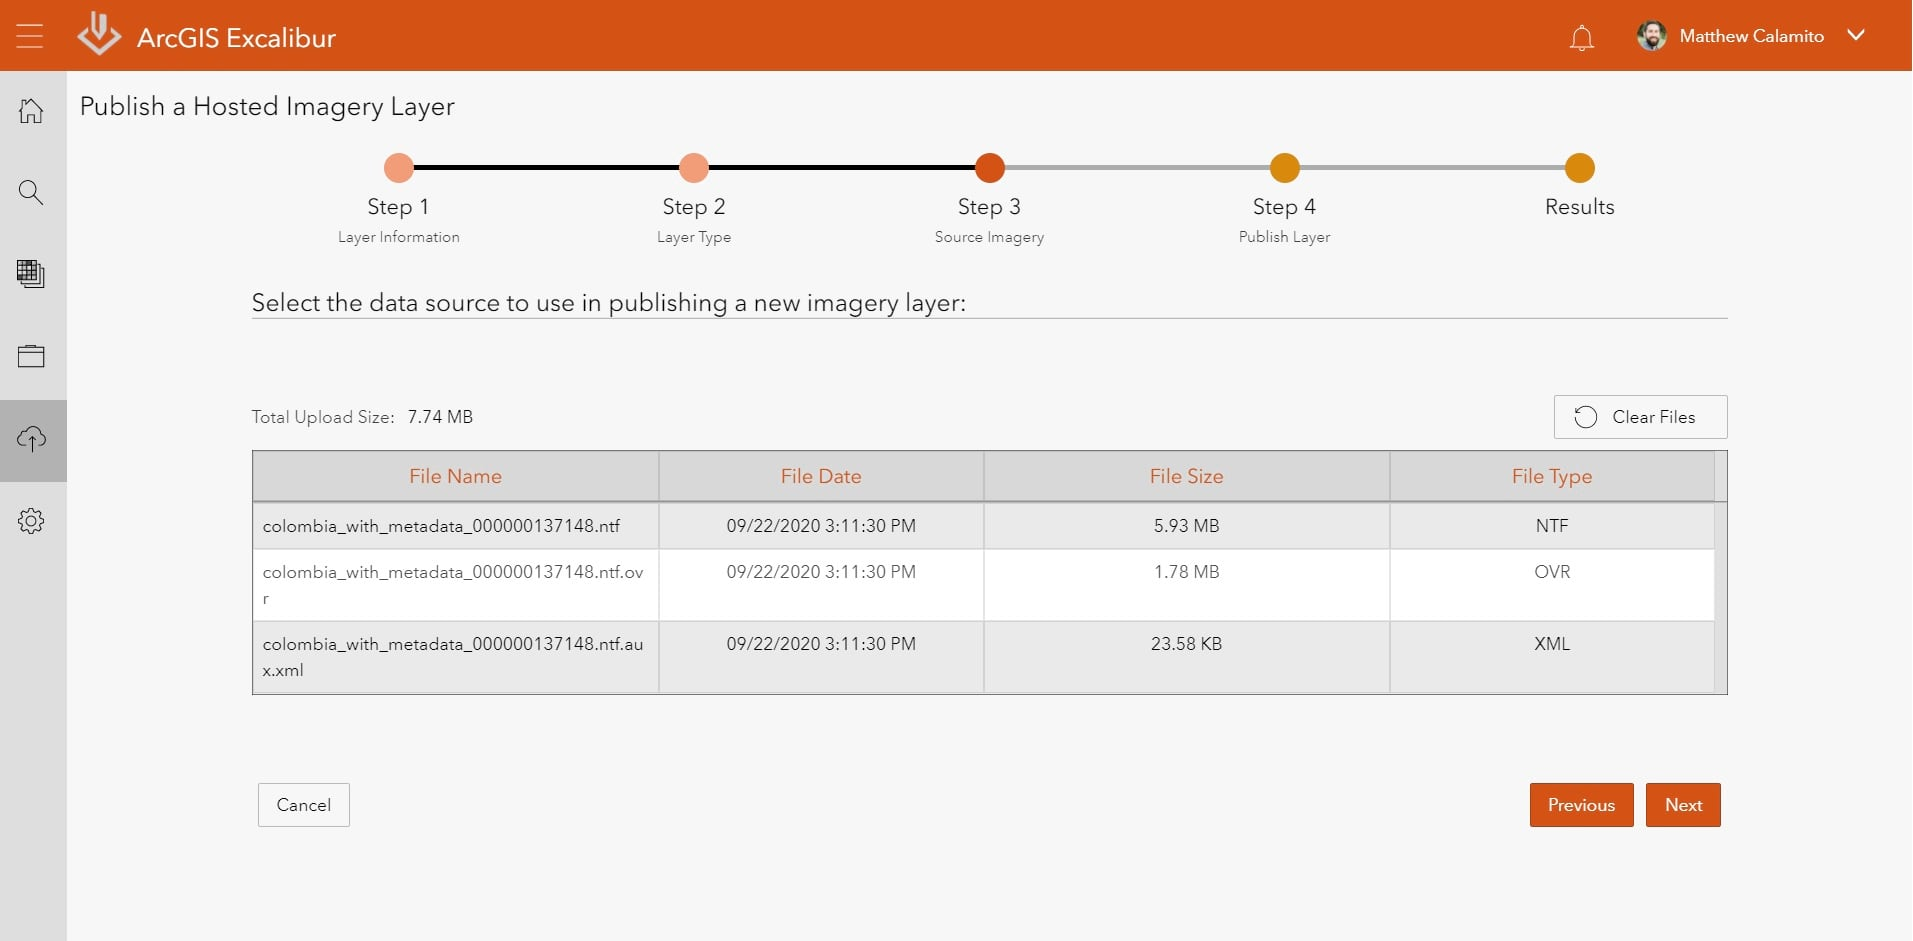 ArcGIS Excalibur Publish Imagery Step 3 - Select Imagery